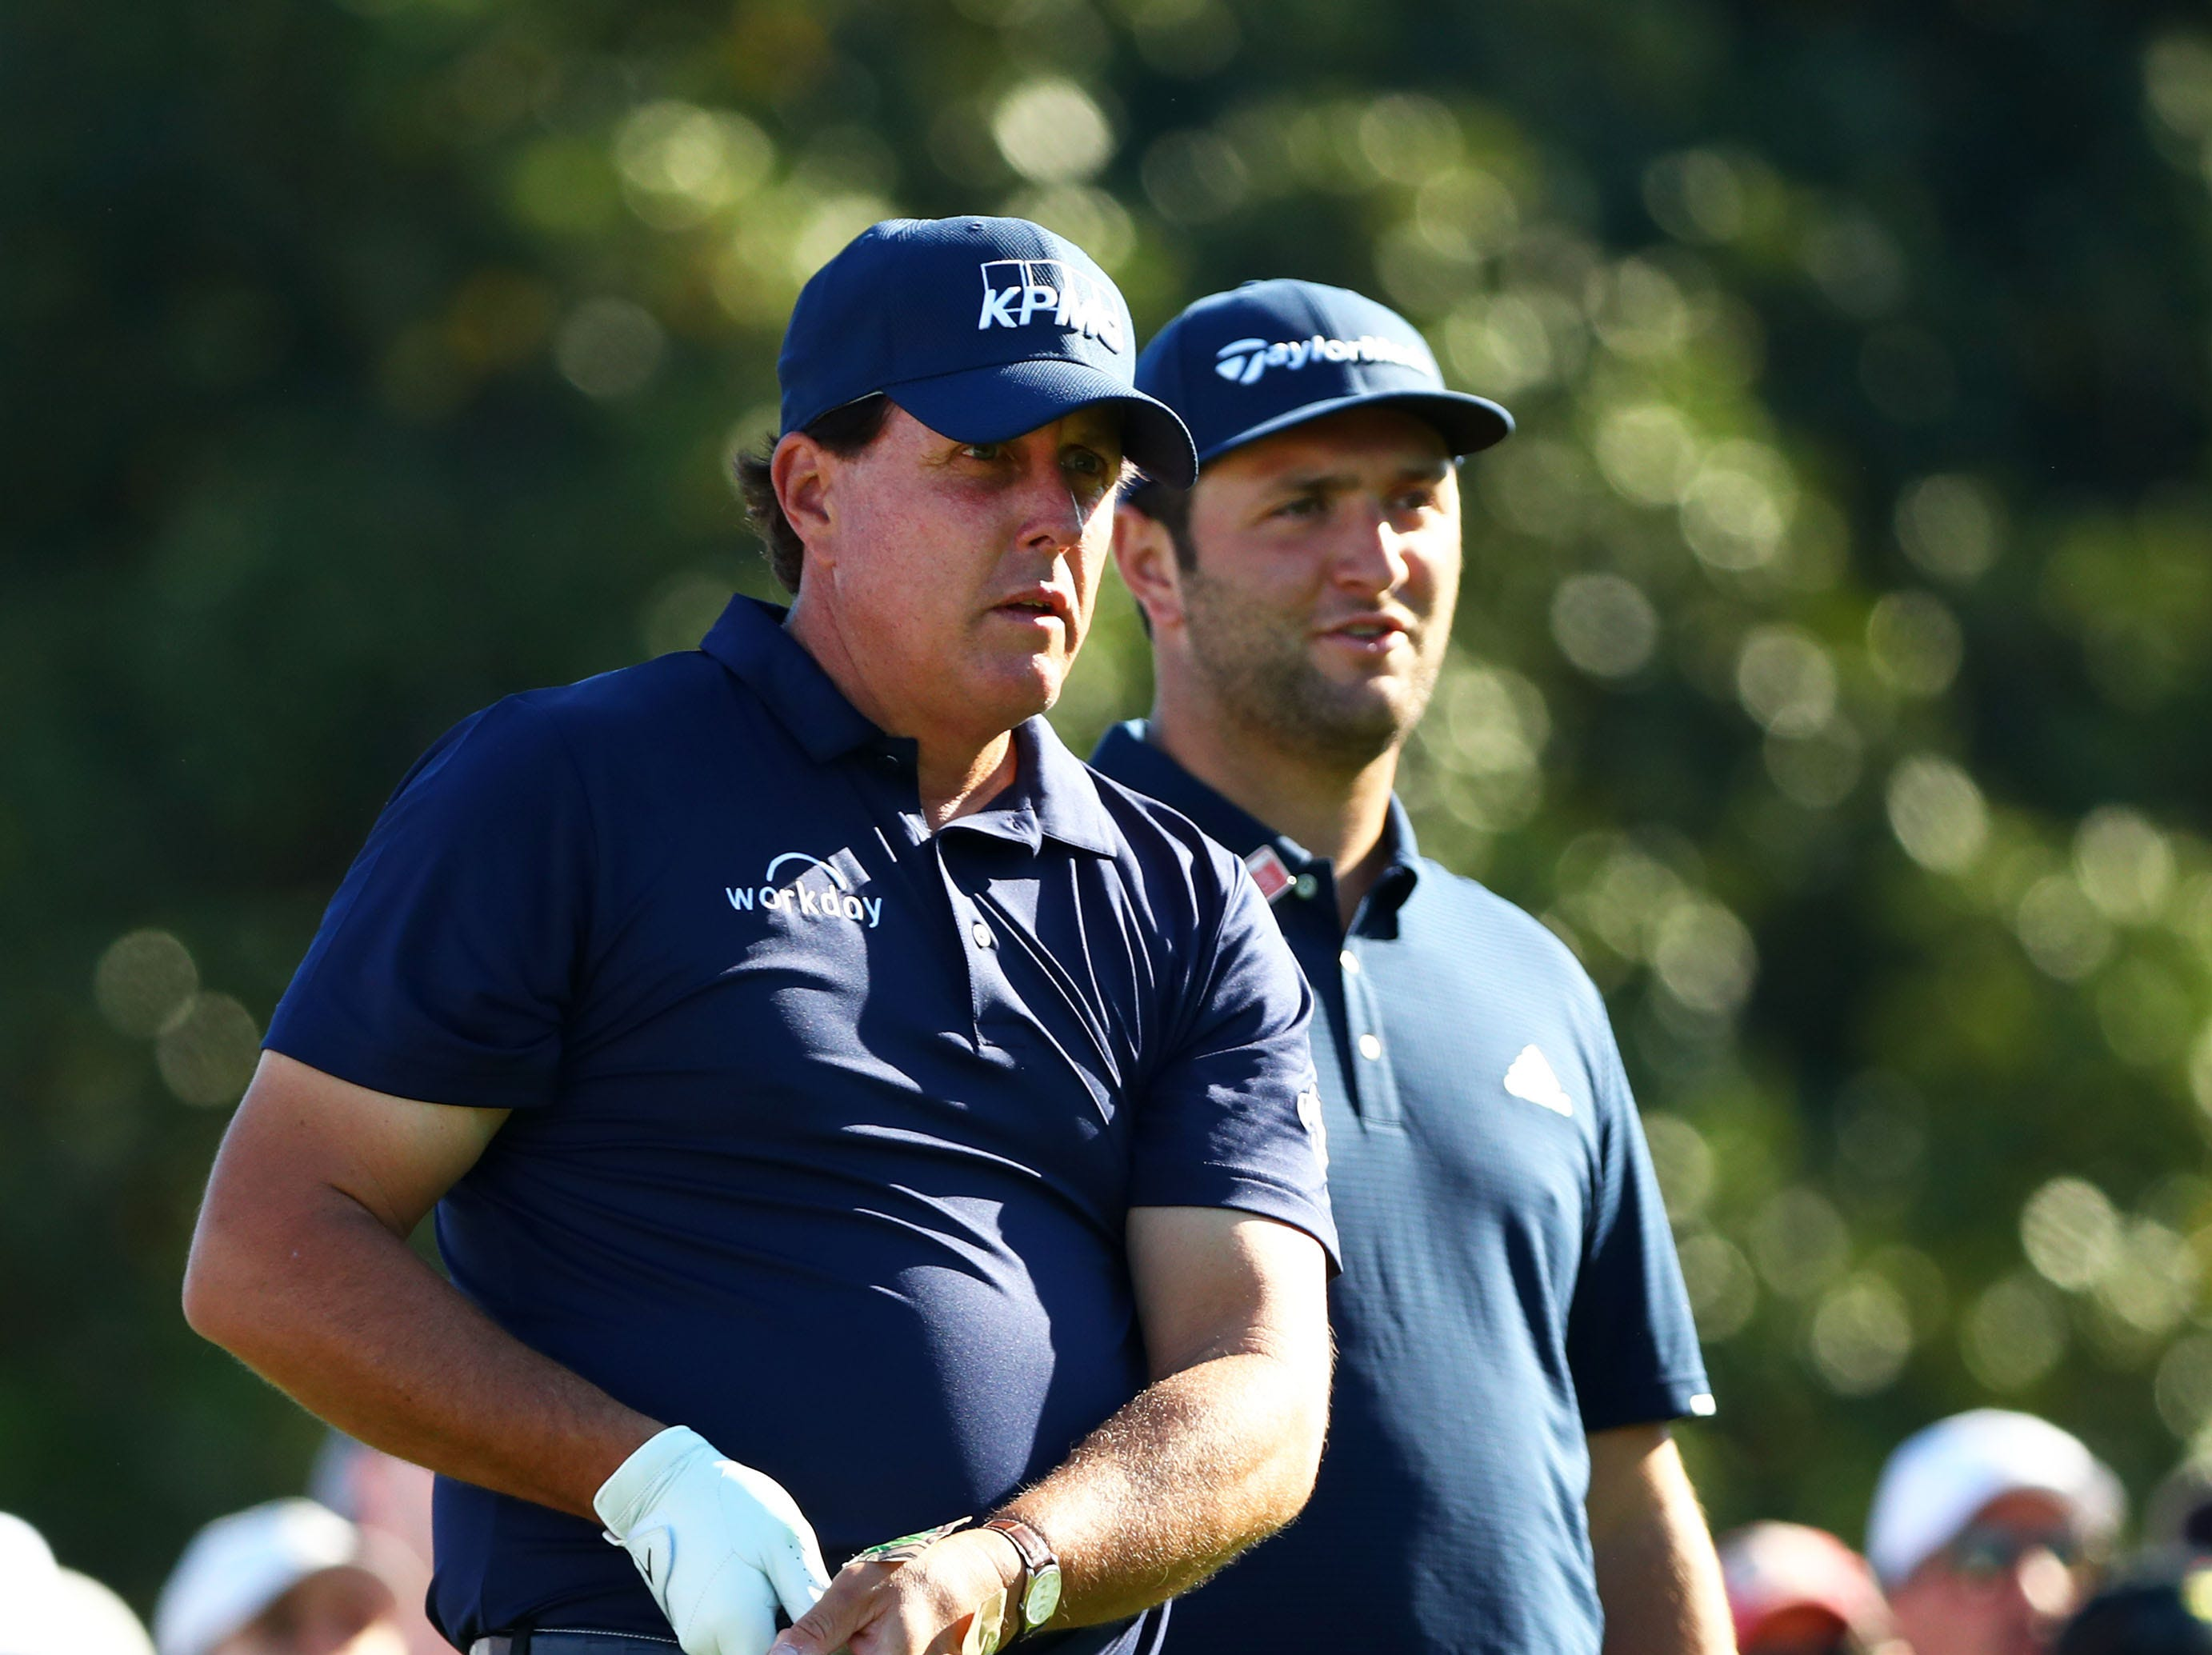 Apr 10, 2019; Augusta, GA, USA; Masters champion Phil Mickelson and Jon Rahm of Spain at the 10th tee box during a practice round for The Masters golf tournament at Augusta National Golf Club. Mandatory Credit: Rob Schumacher-USA TODAY Sports